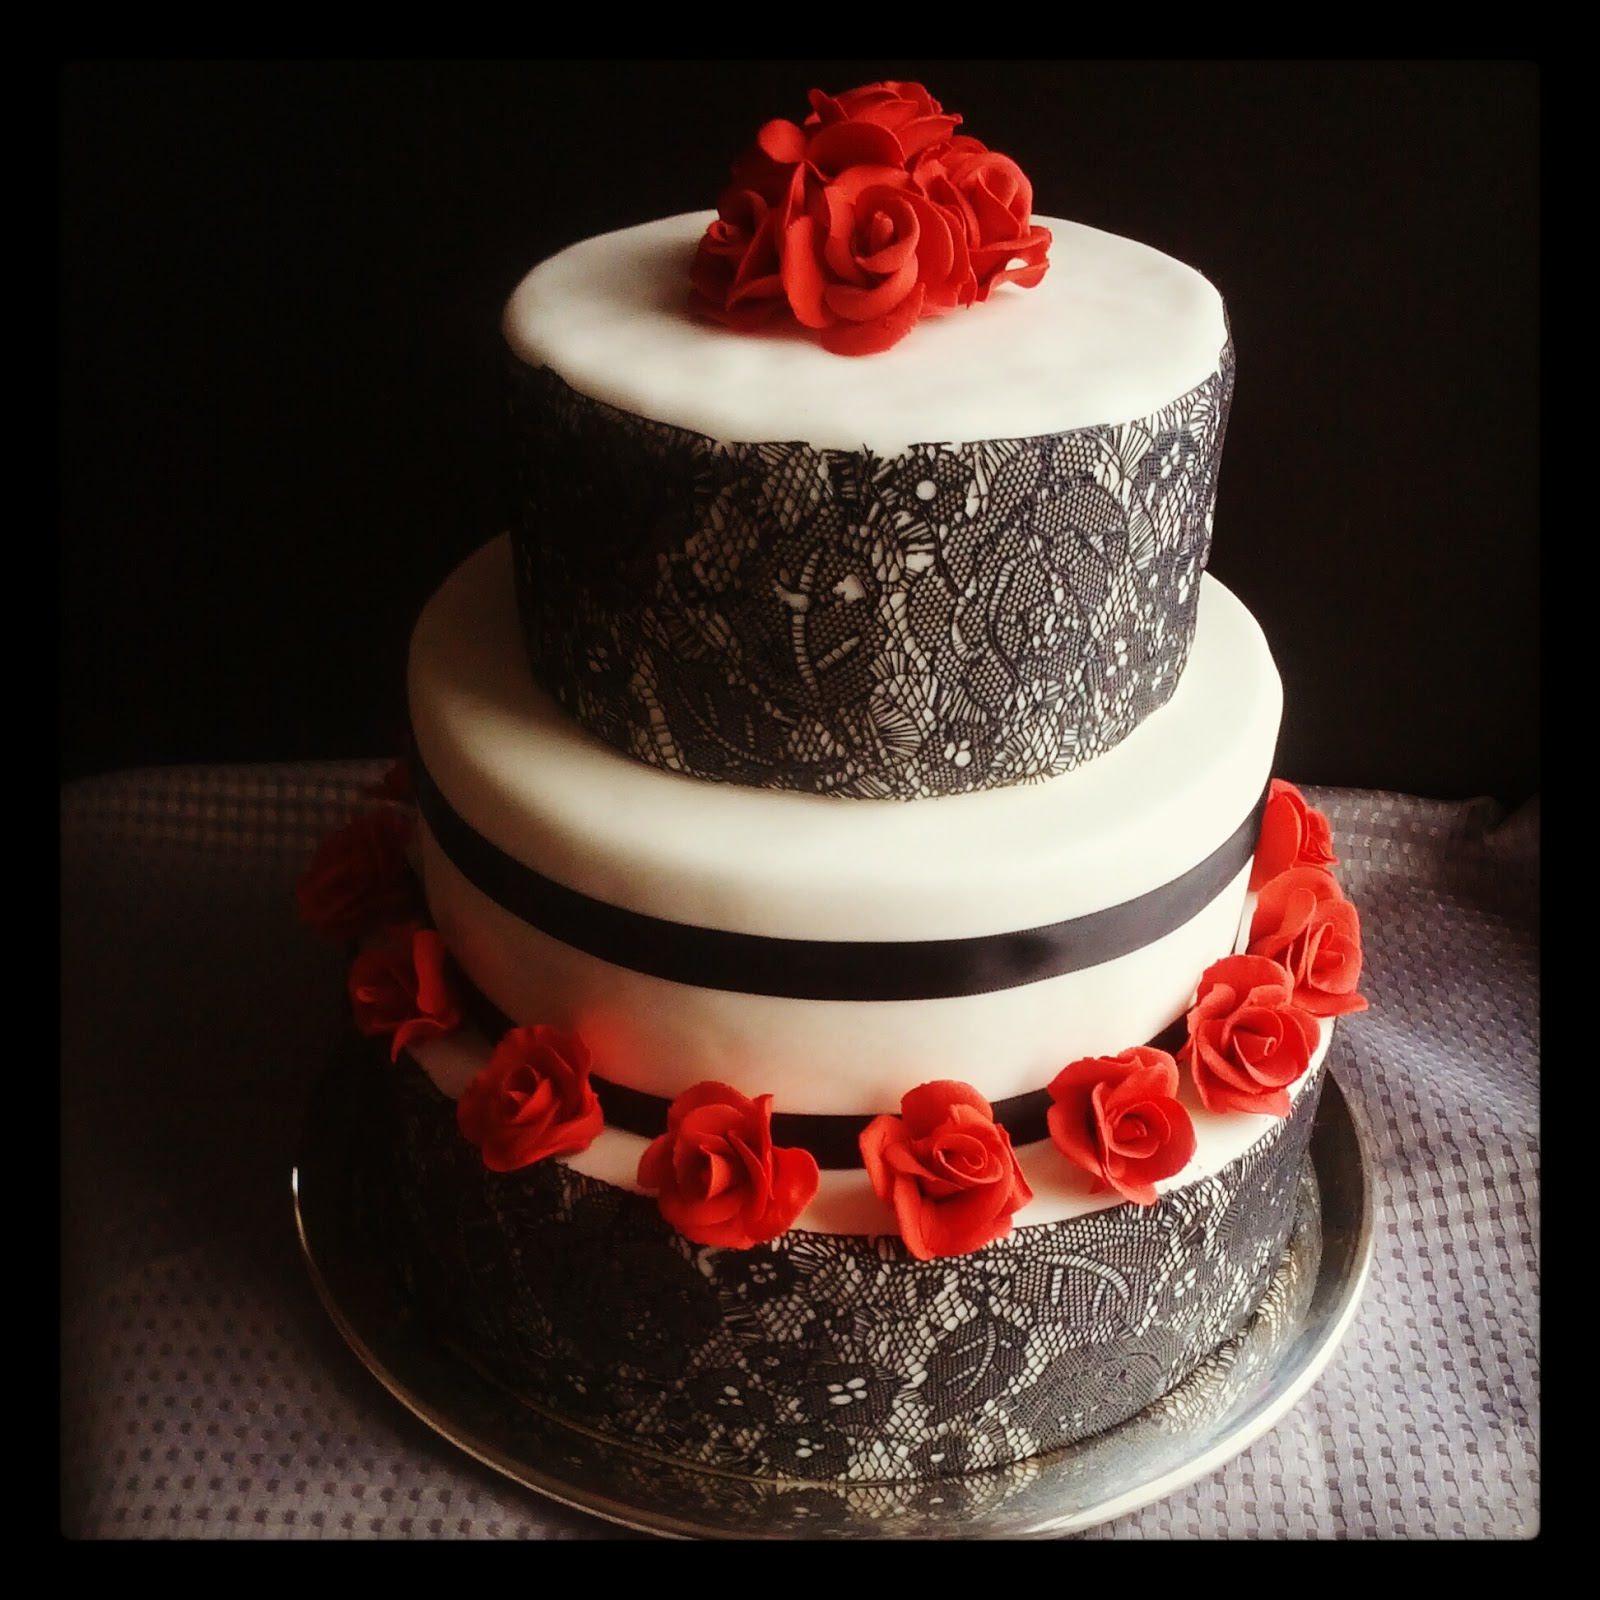 Second Generation Cake Design Black Lace and Red Roses